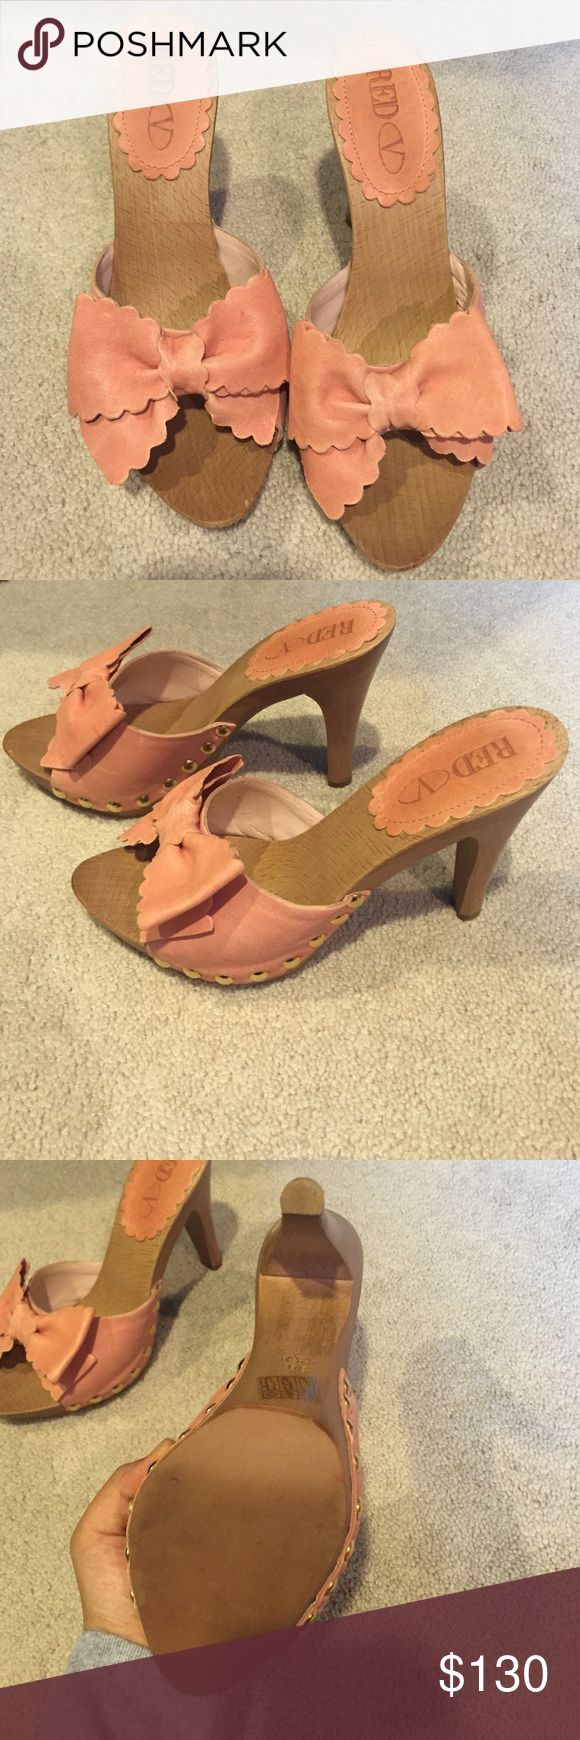 RED Valentino heels Never been used. New without tags RED Valentino Shoes Heels